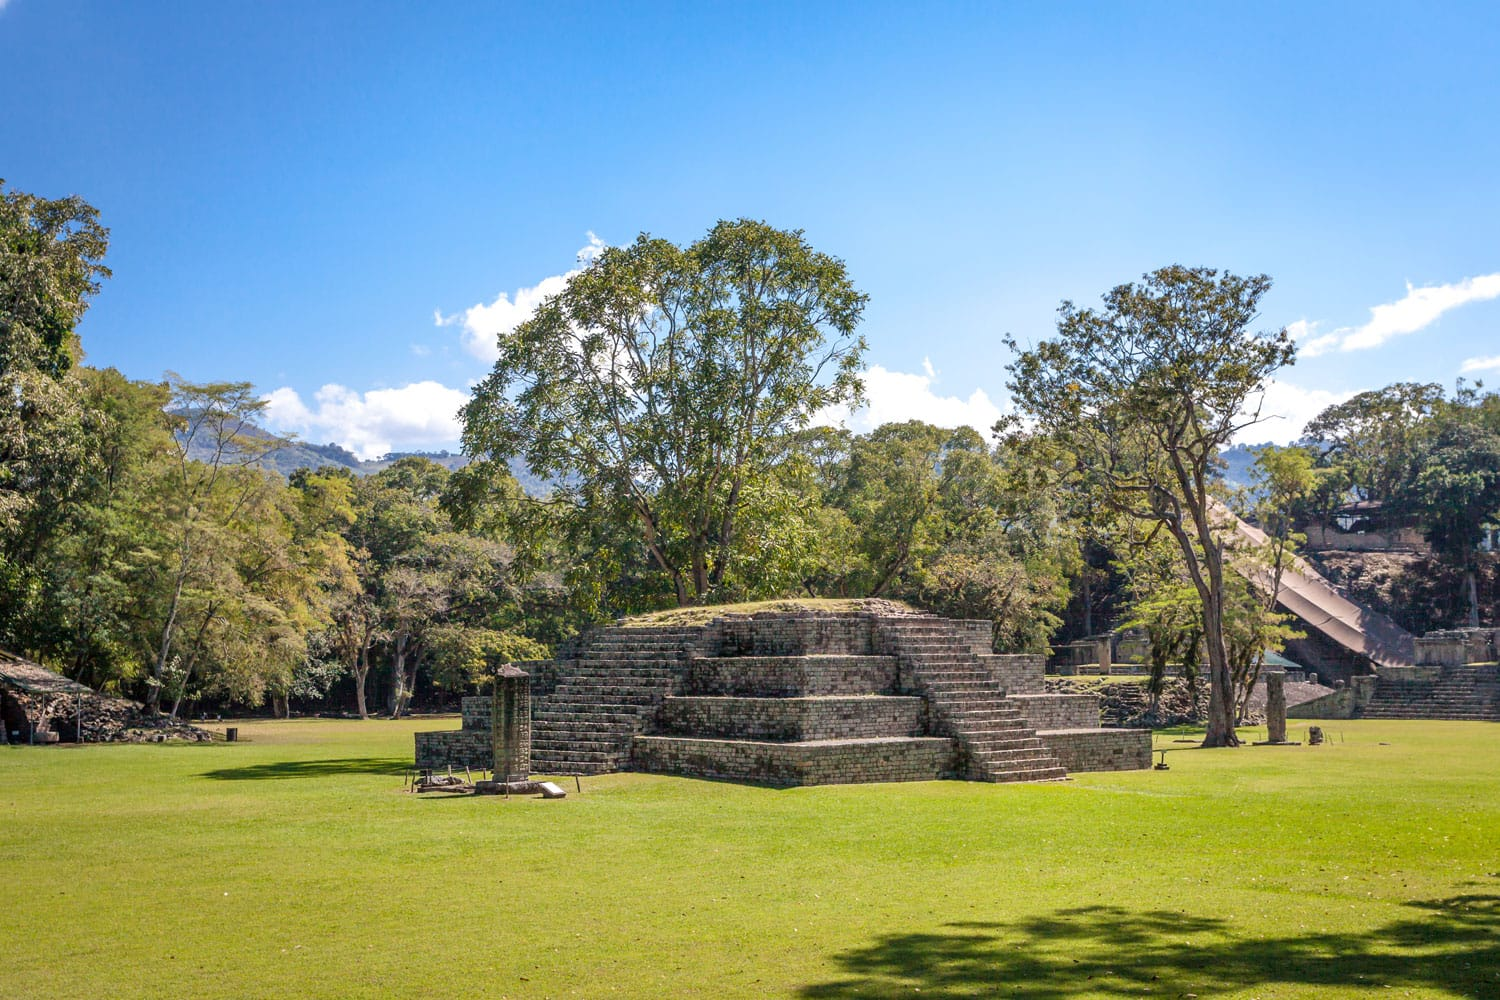 Ancient Mayan ruins in Copan, Honduras